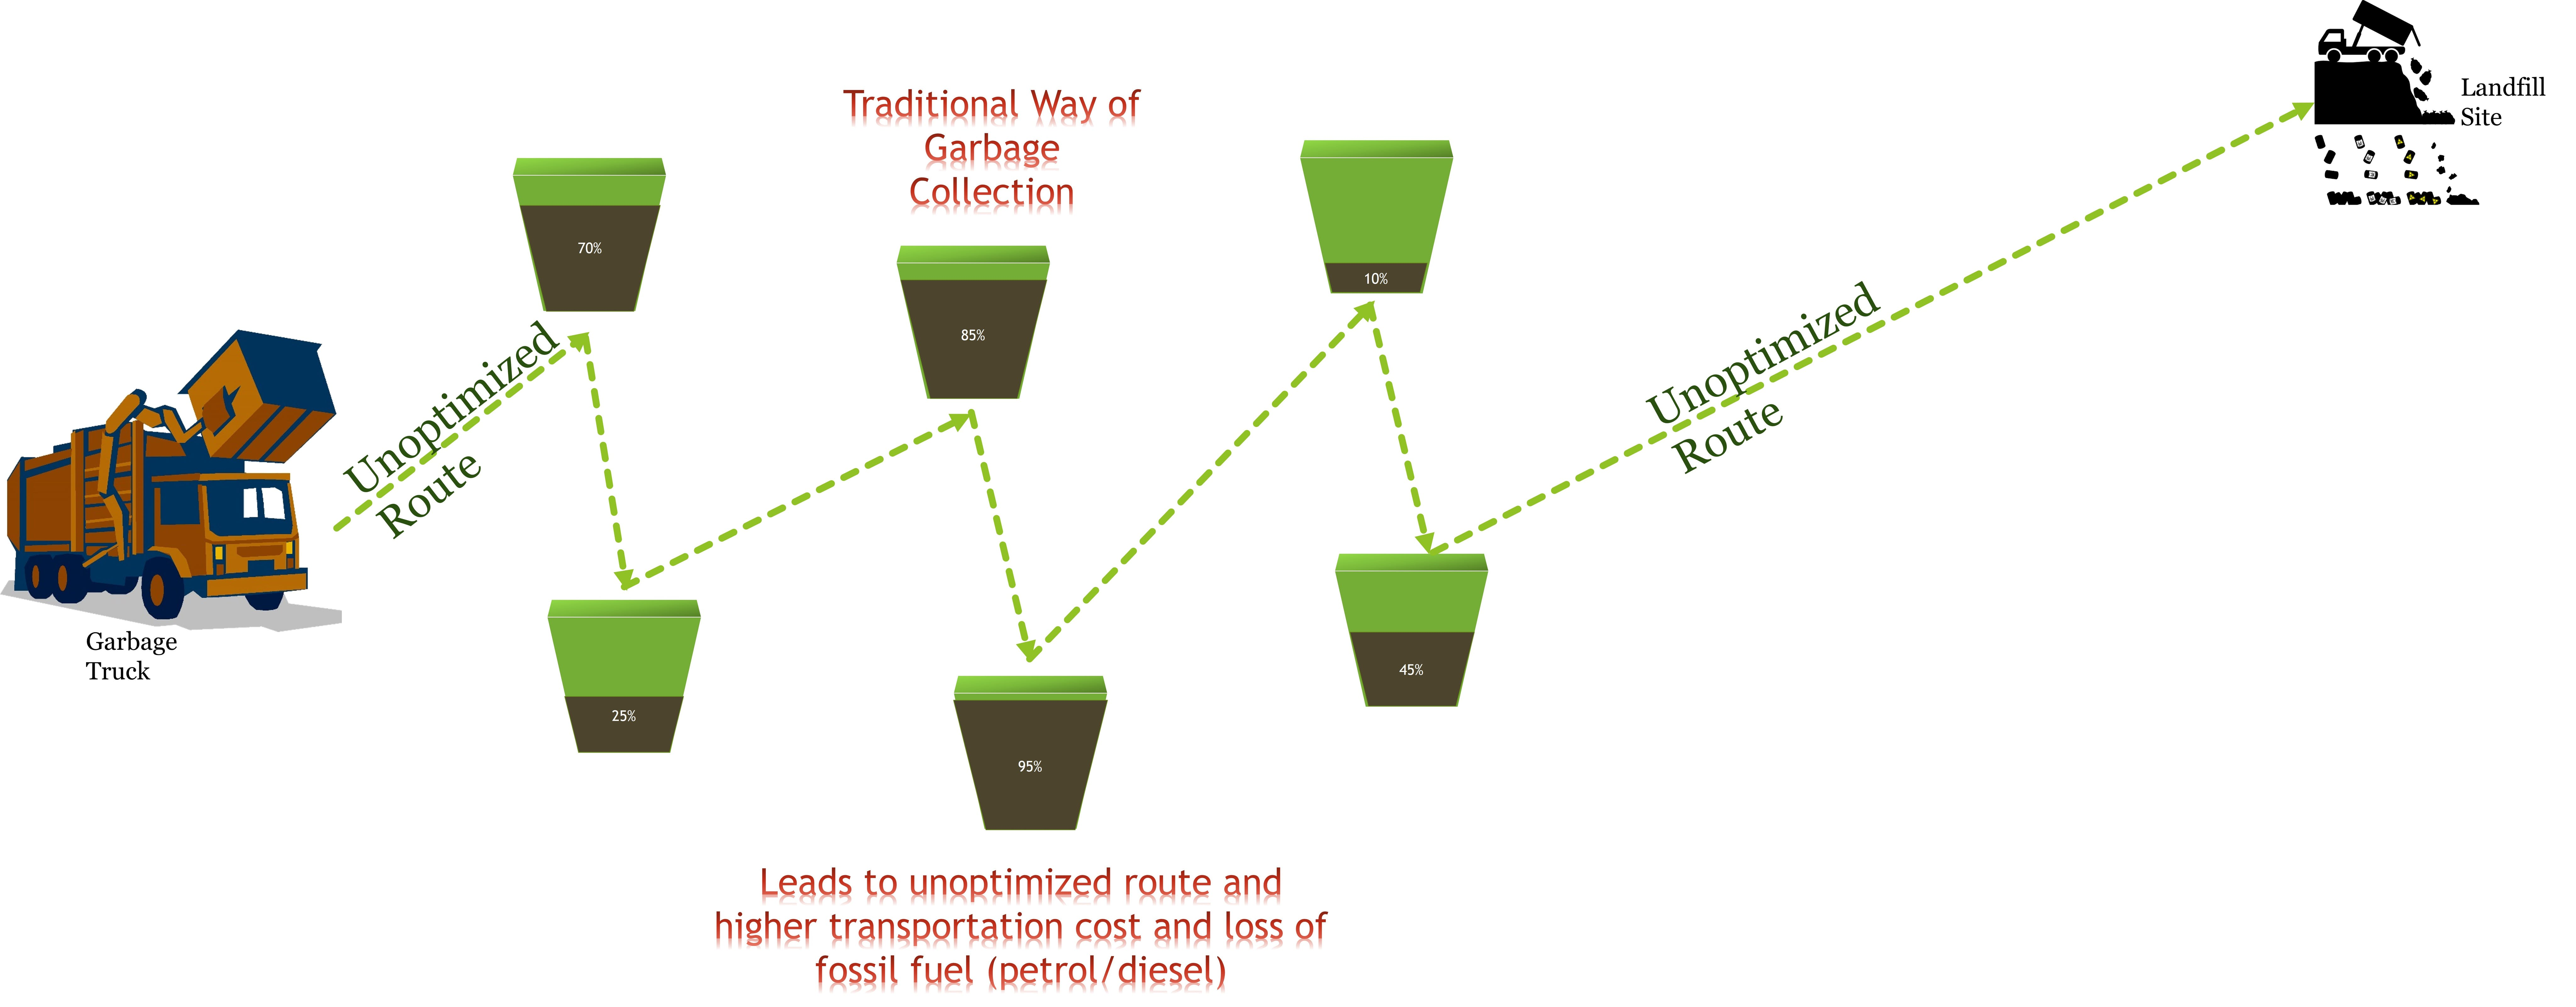 Traditional way of garbage collection